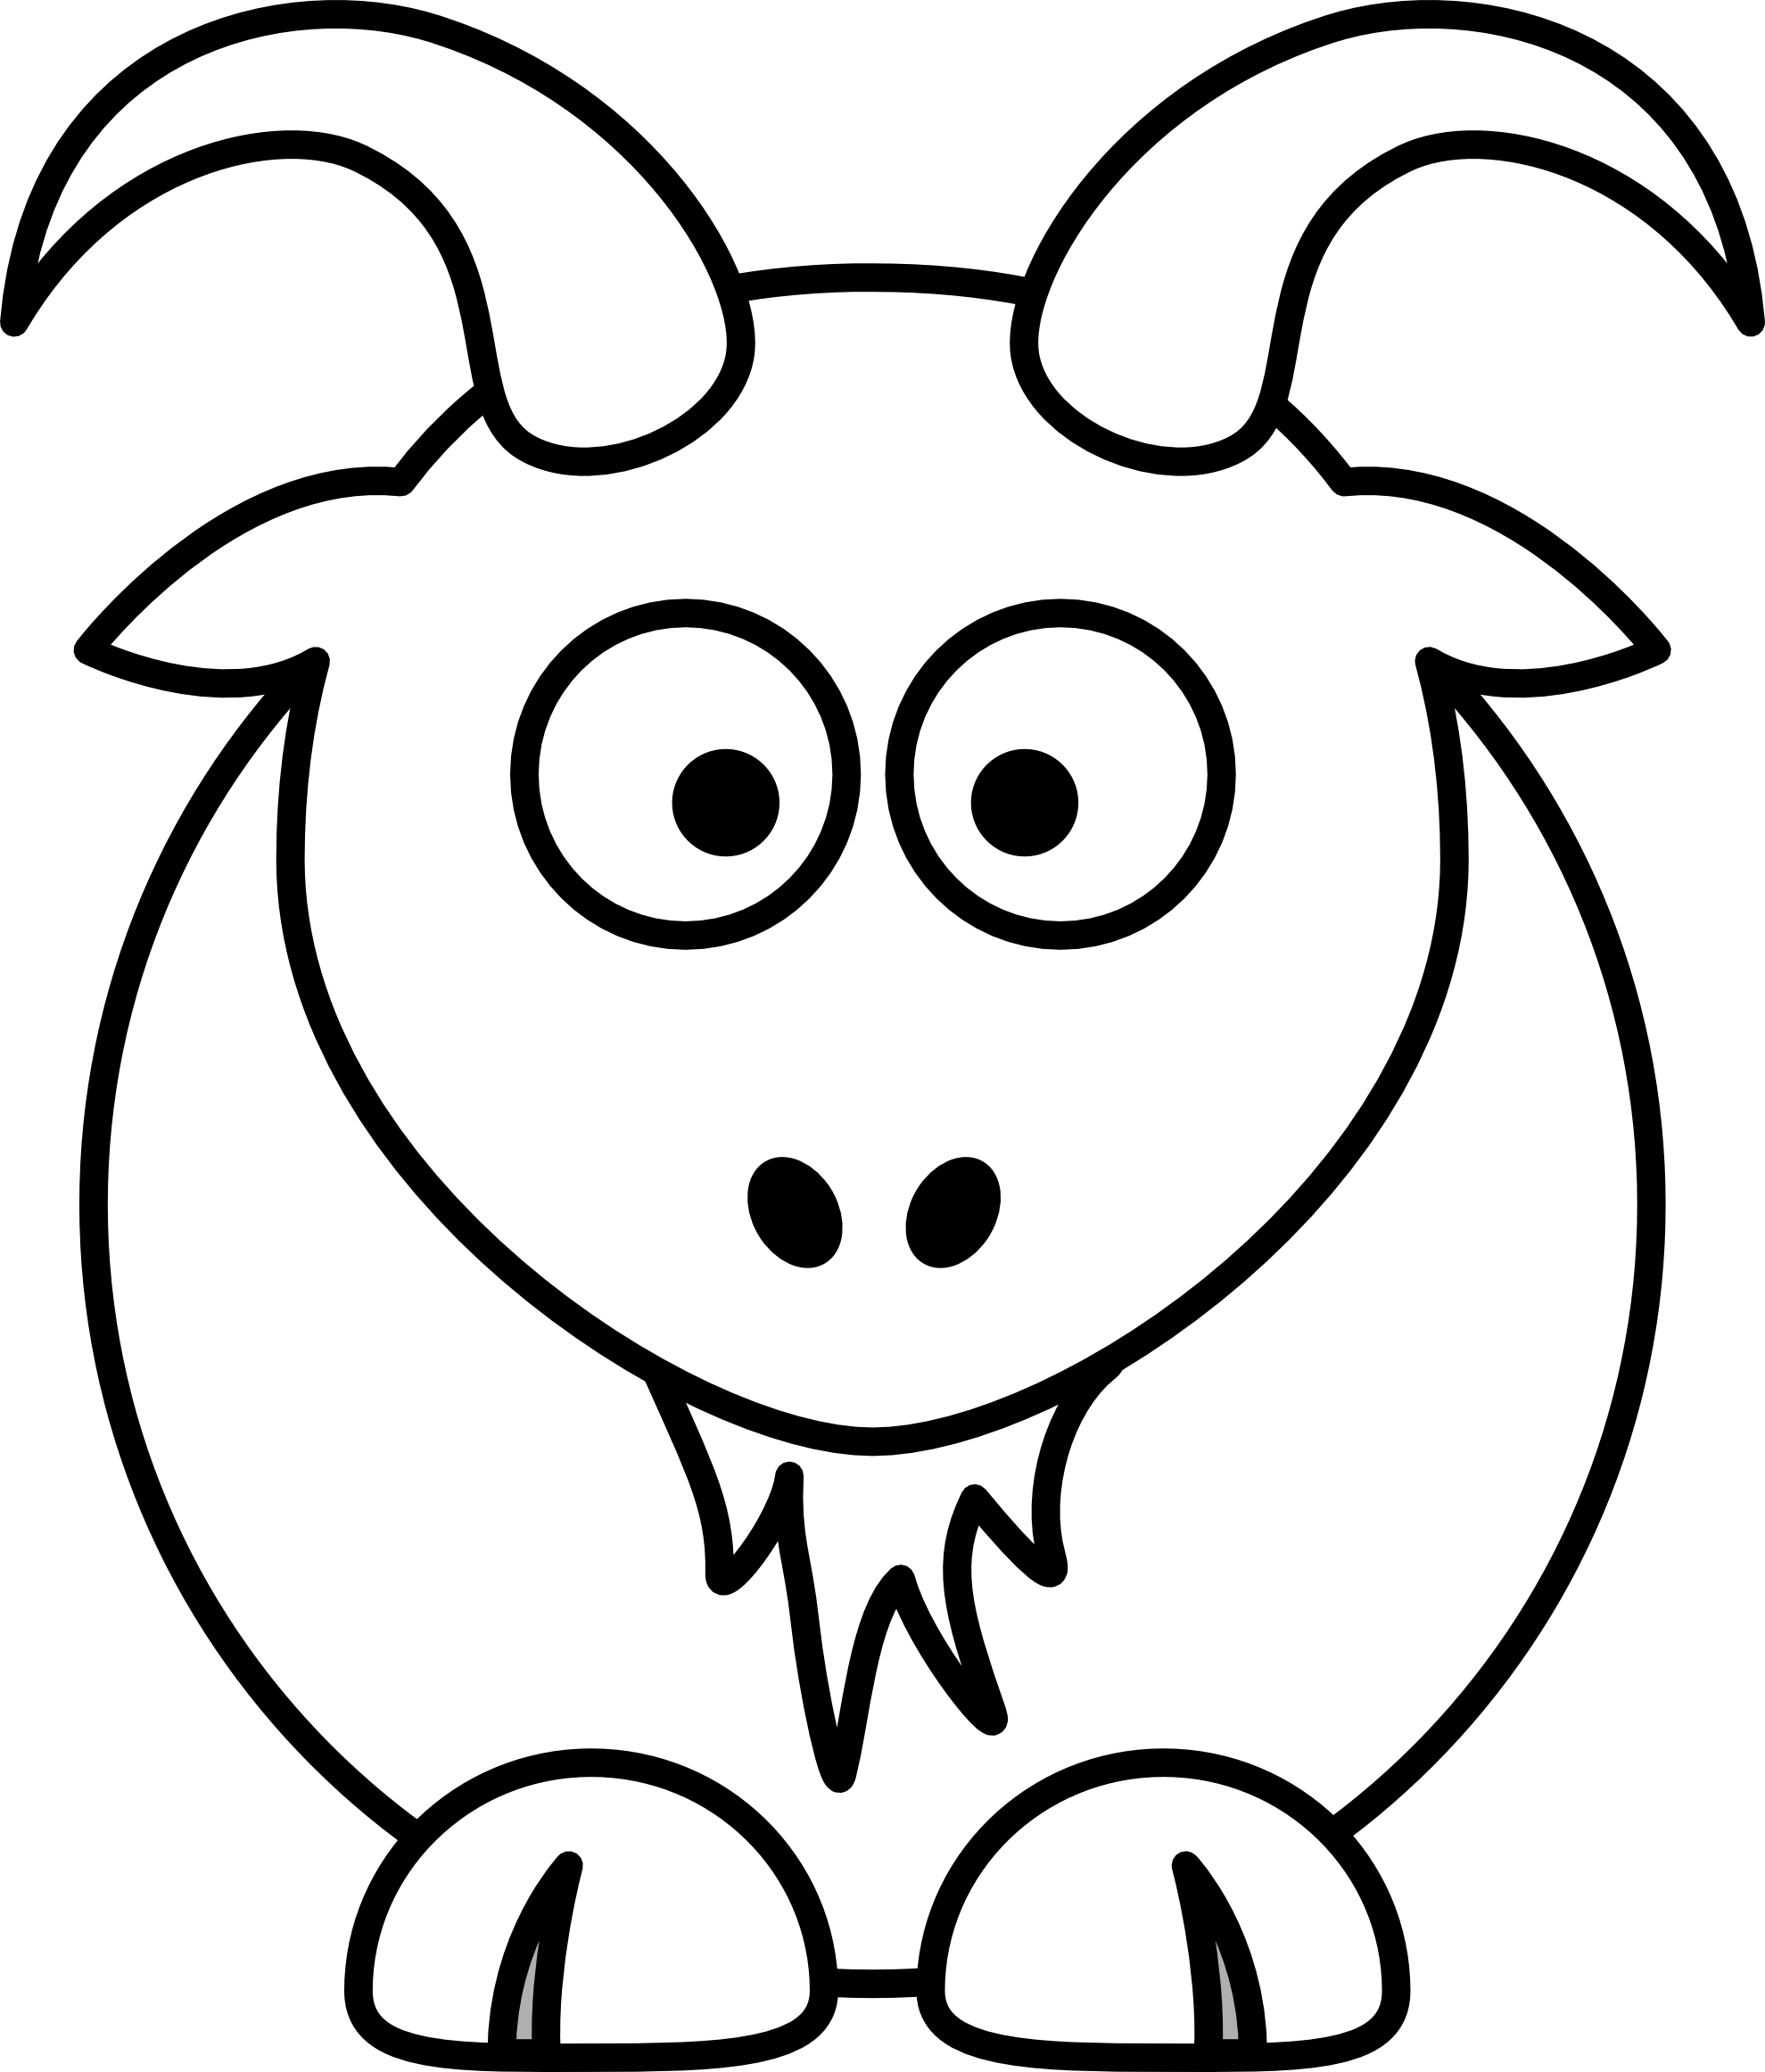 Cartoon Characters Black And White : Animal cartoon characters black and white